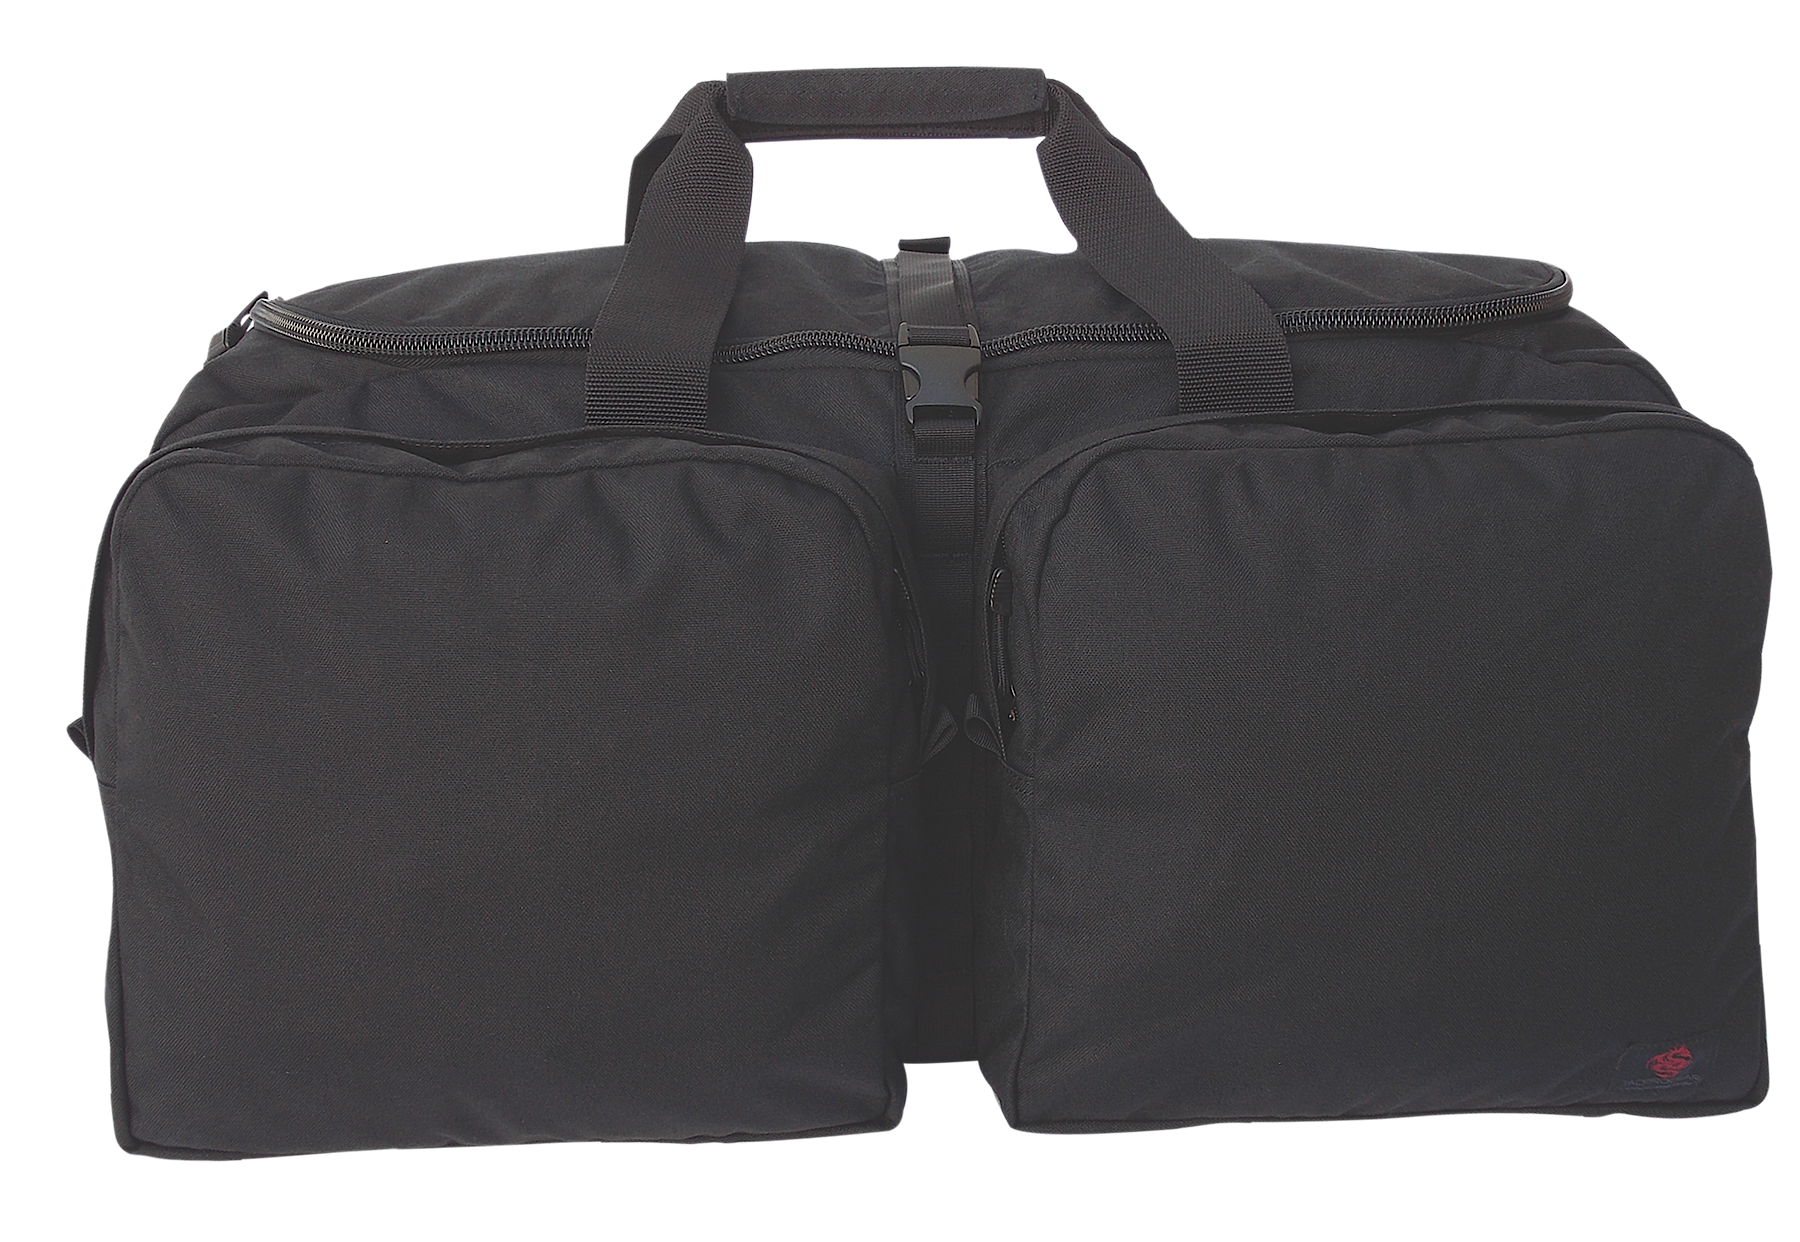 Tacprogear BRLO2 Rapid Load-Out Bag XL Duffle 13x27x13 Black